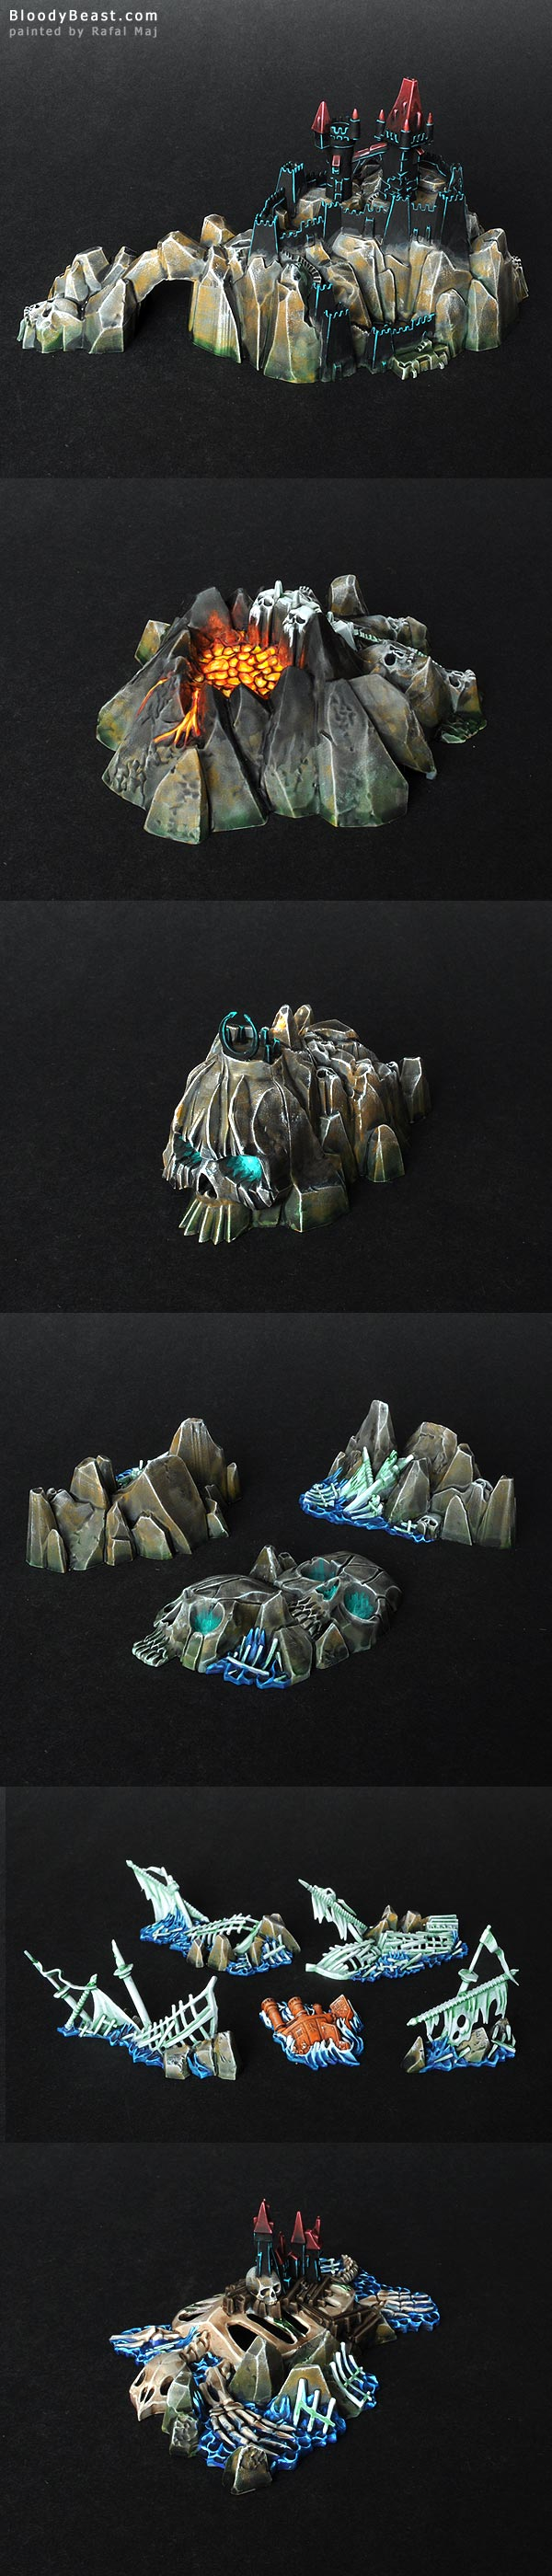 Dreadfleet Islands painted by Rafal Maj (BloodyBeast.com)